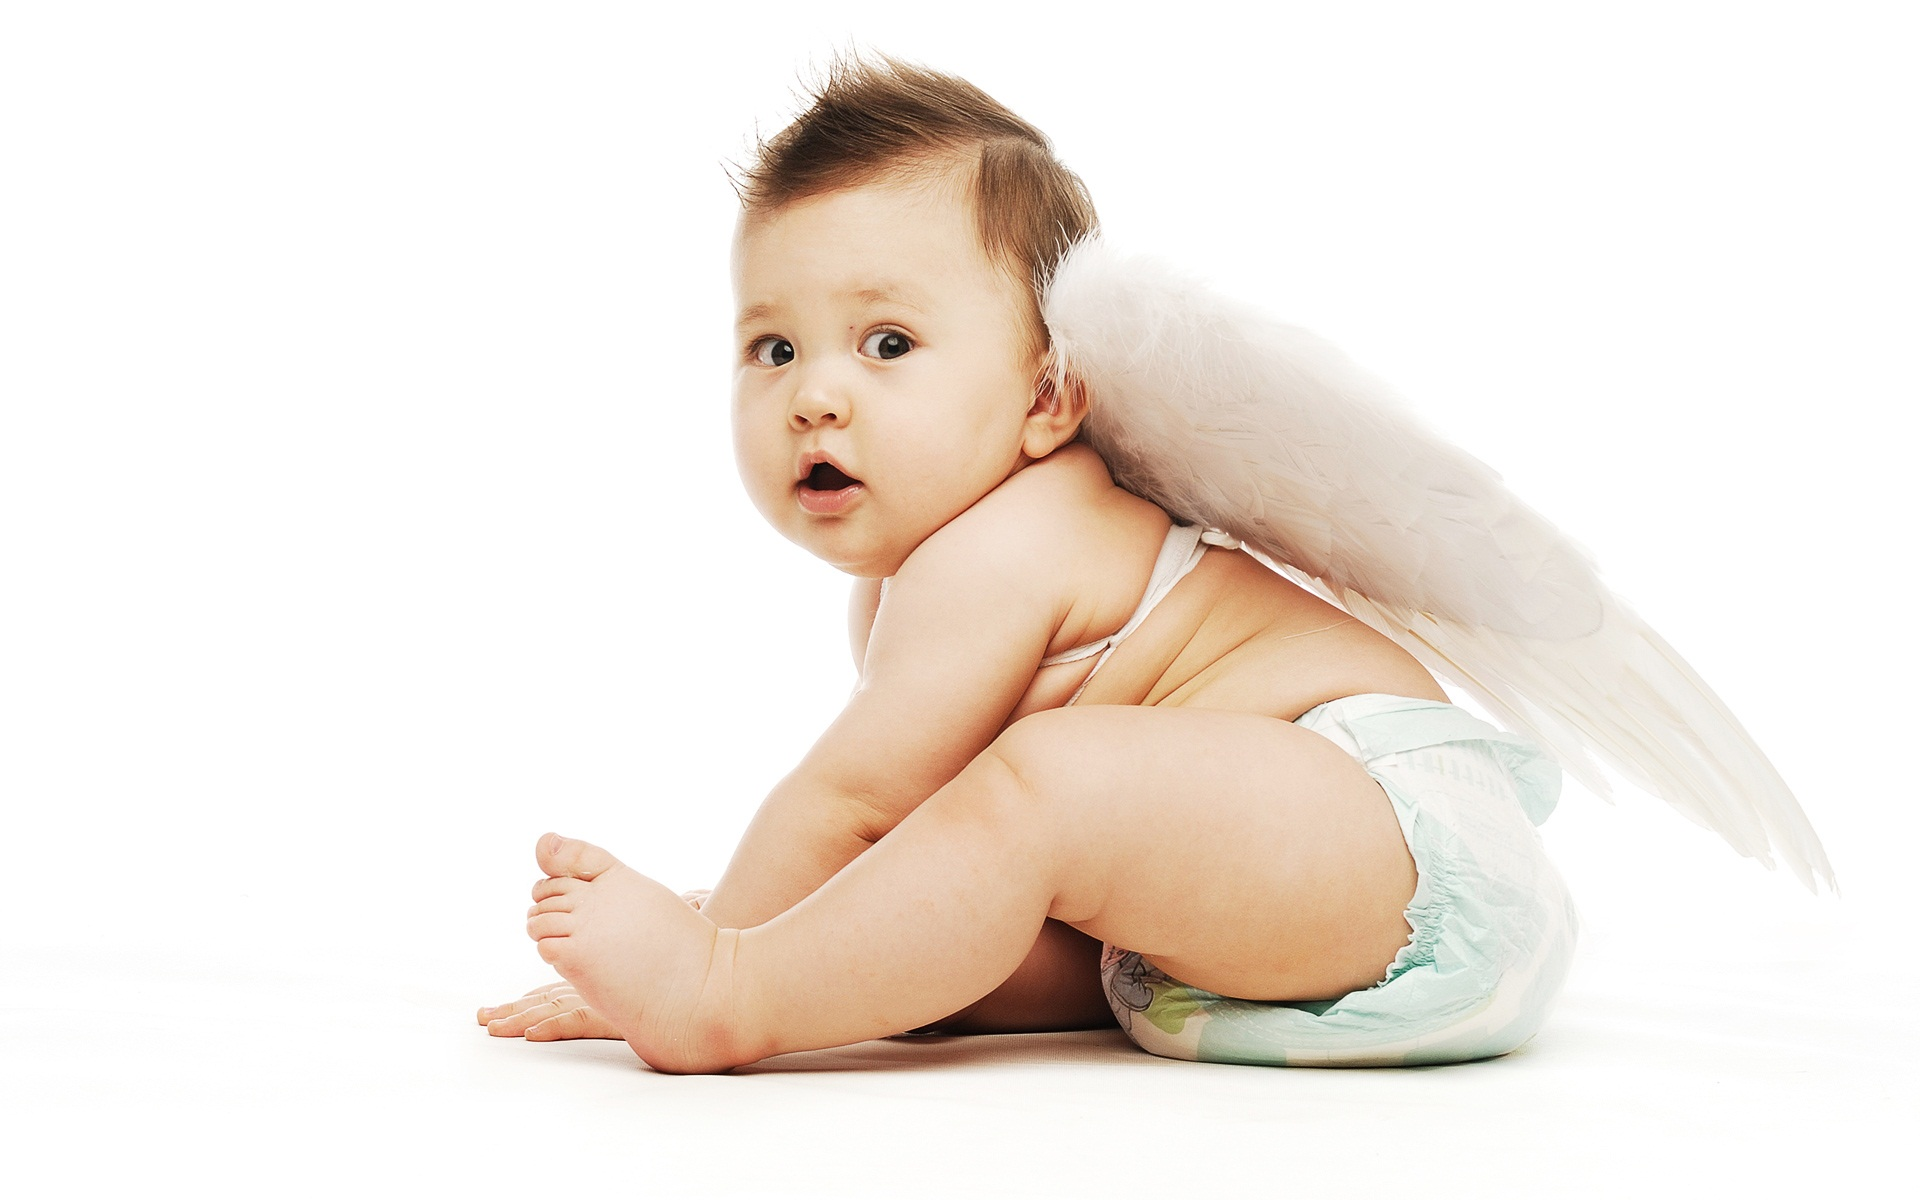 Beautiful Wallpaper High Quality Baby - baby-backgrounds_113219289  HD_236013.jpg